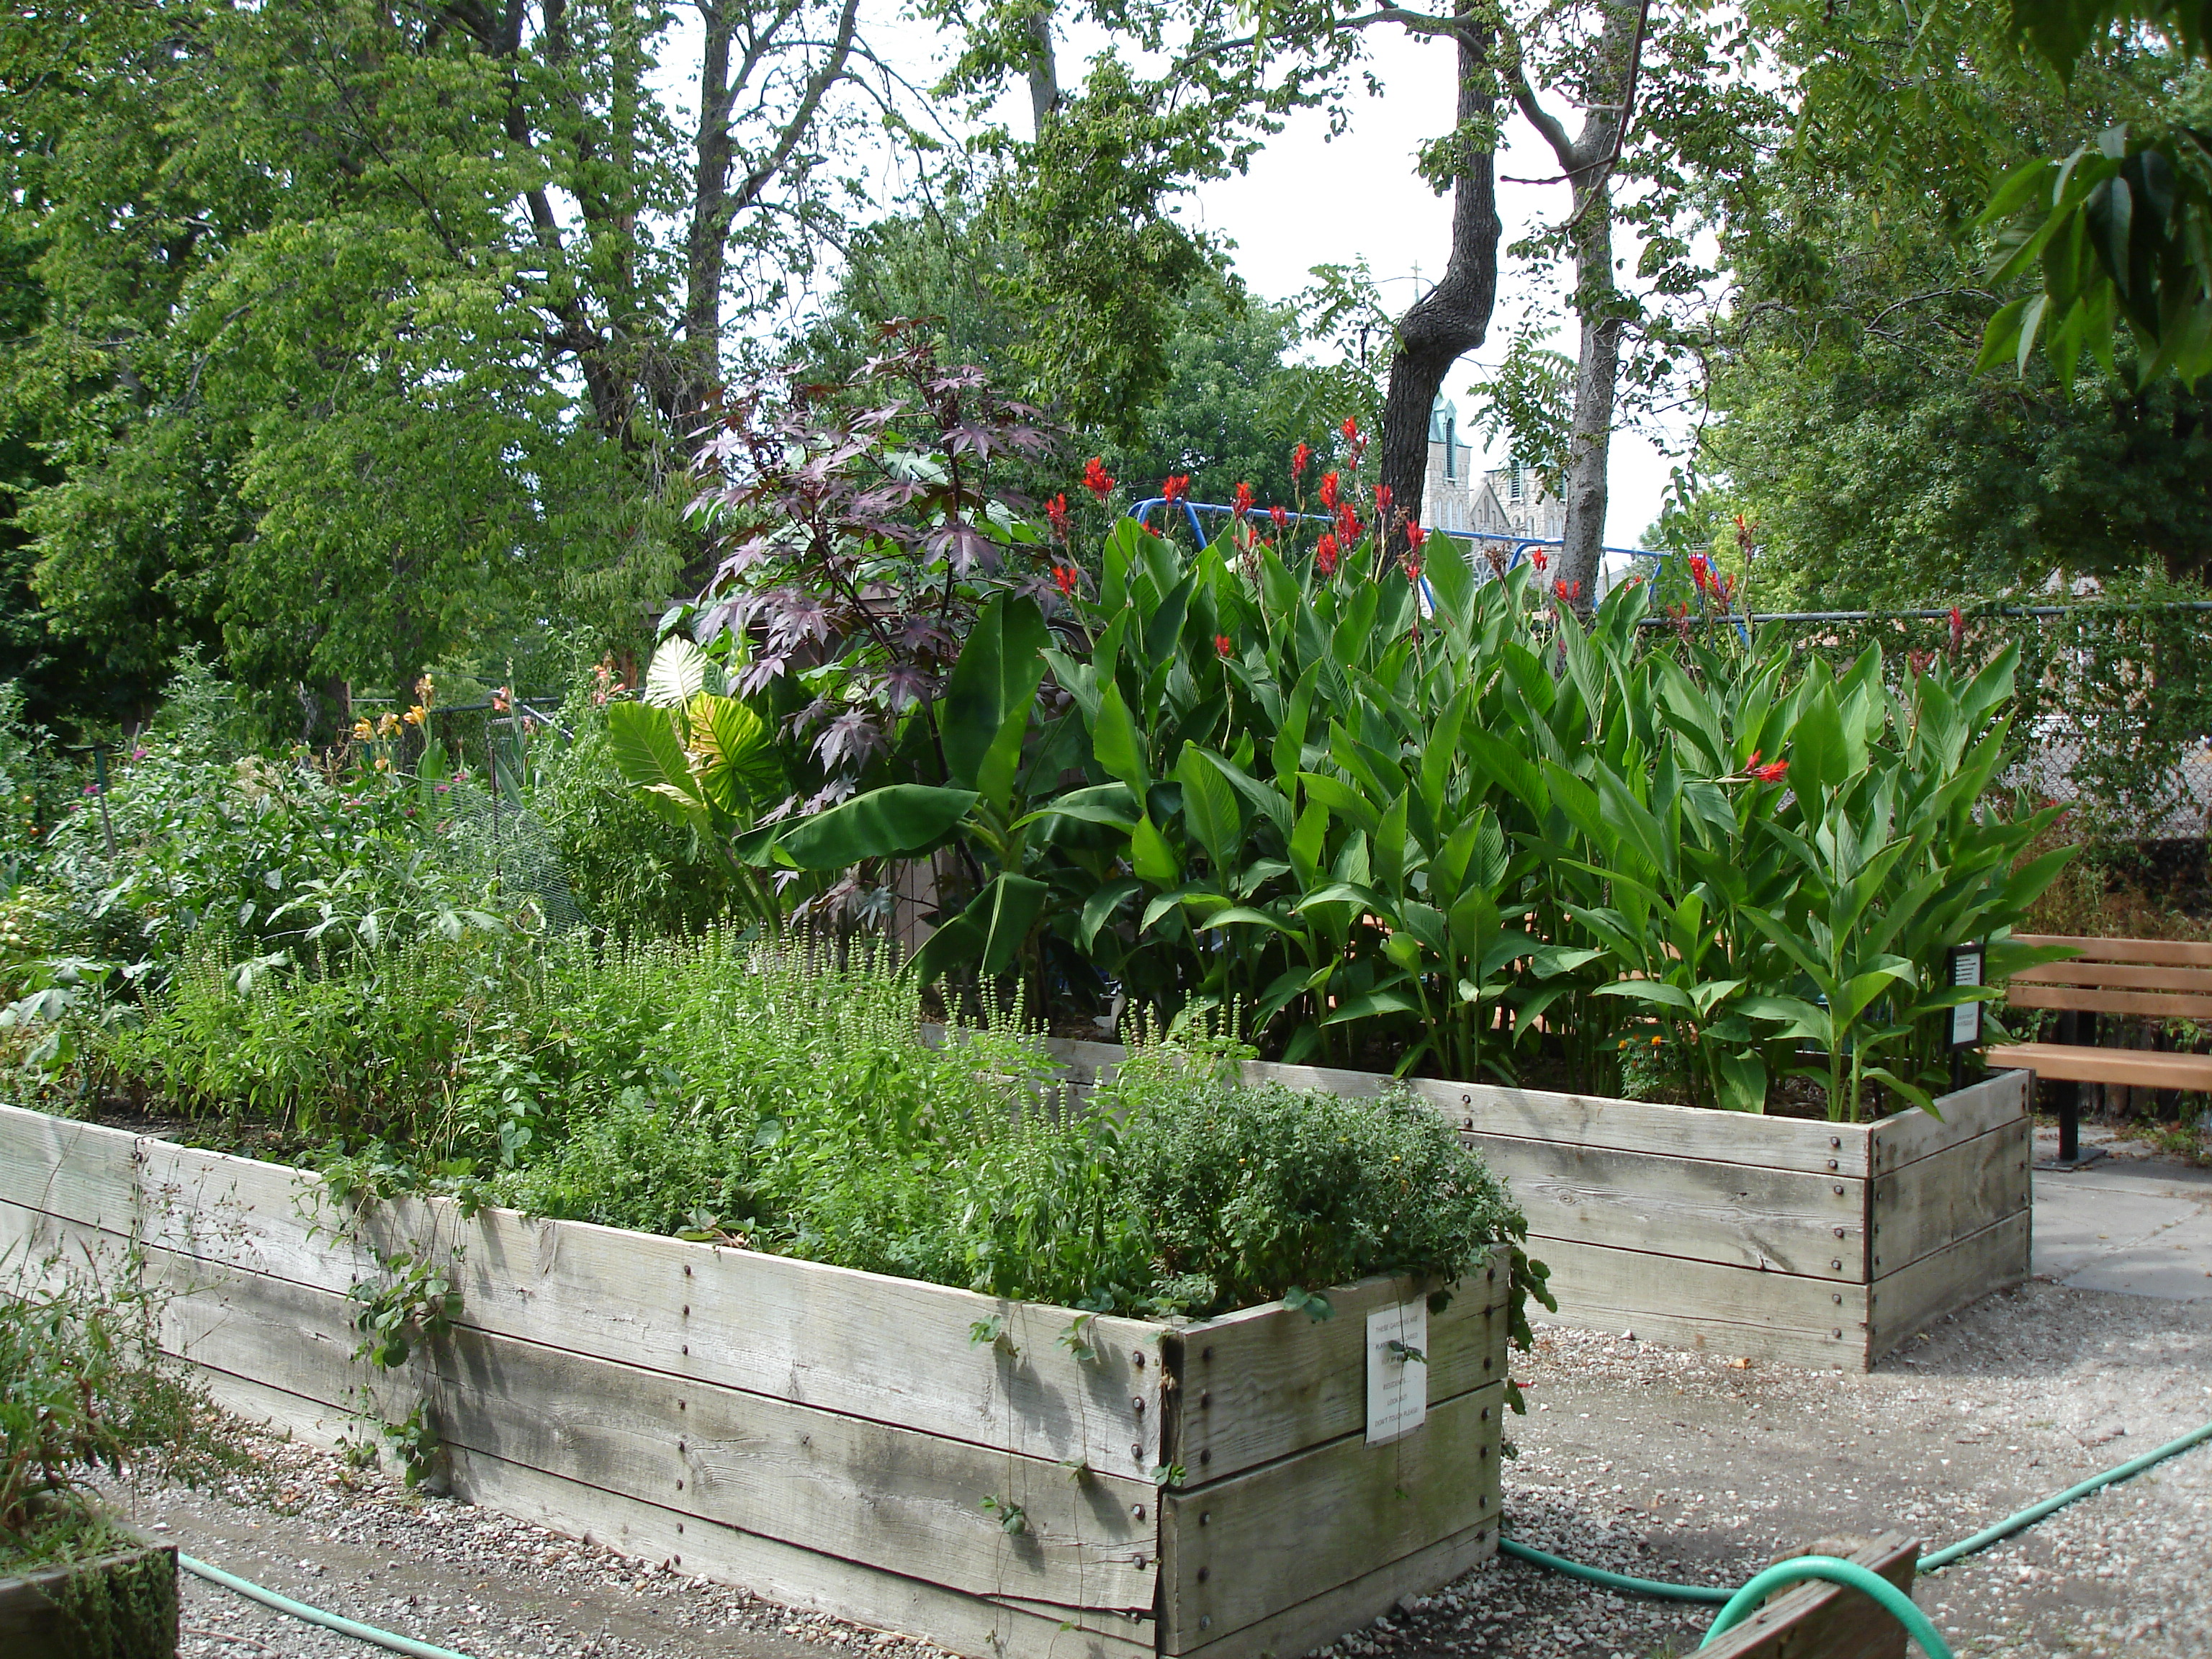 The adapted gardens in Paquin Park